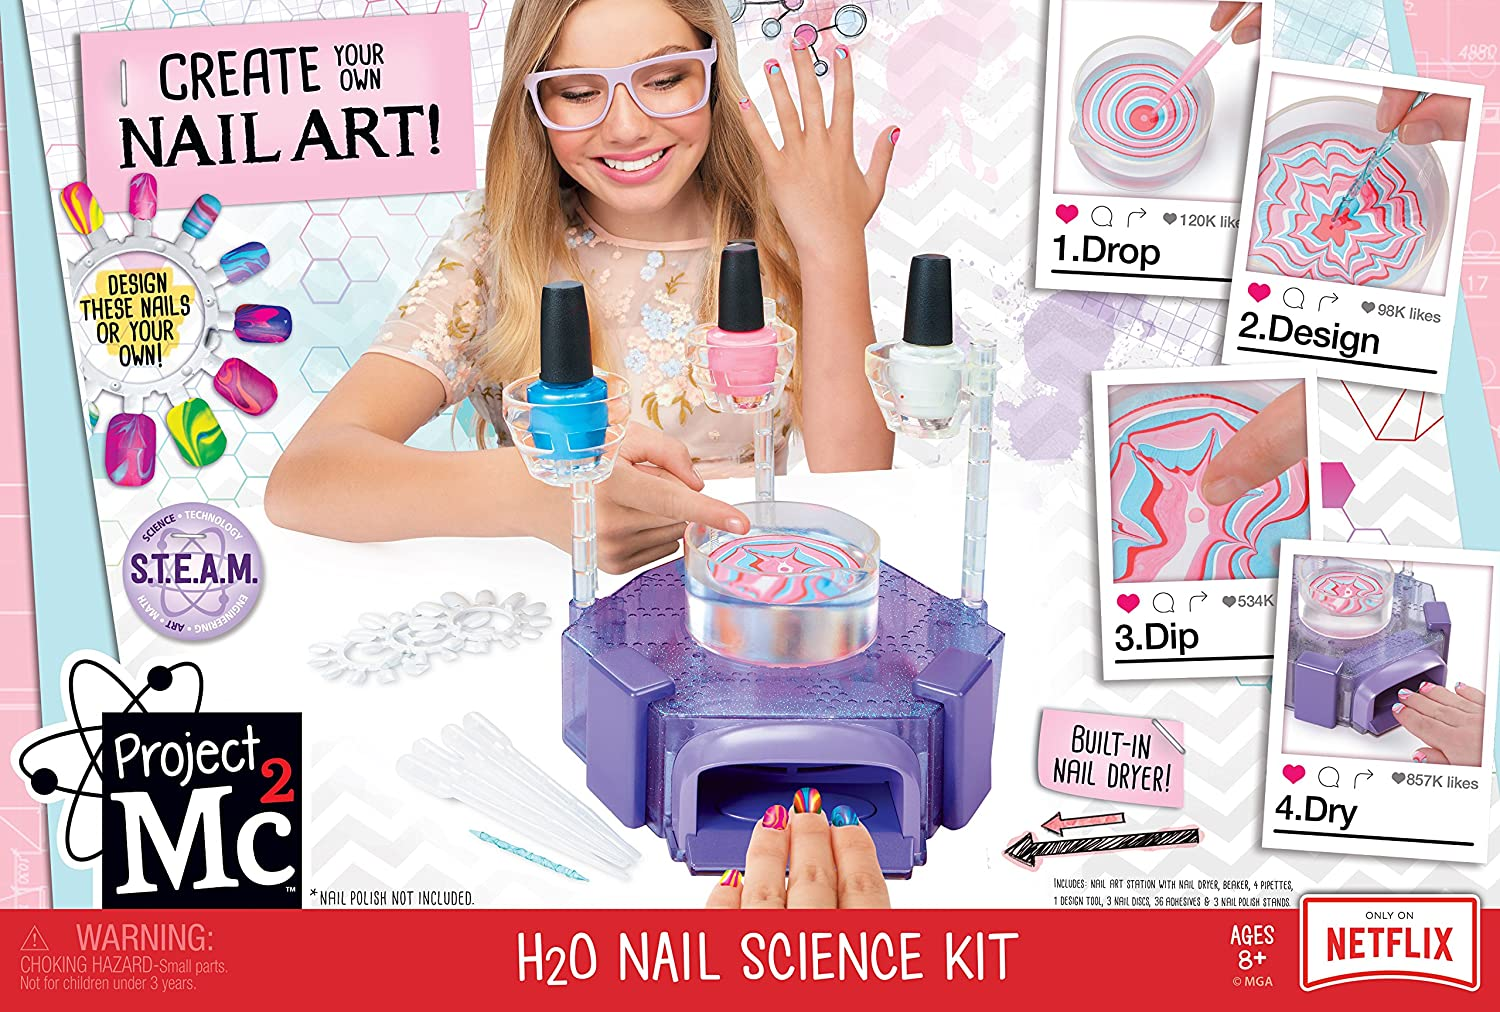 Amazon.com: Project Mc2 H2O Nail Science Kit: Toys & Games